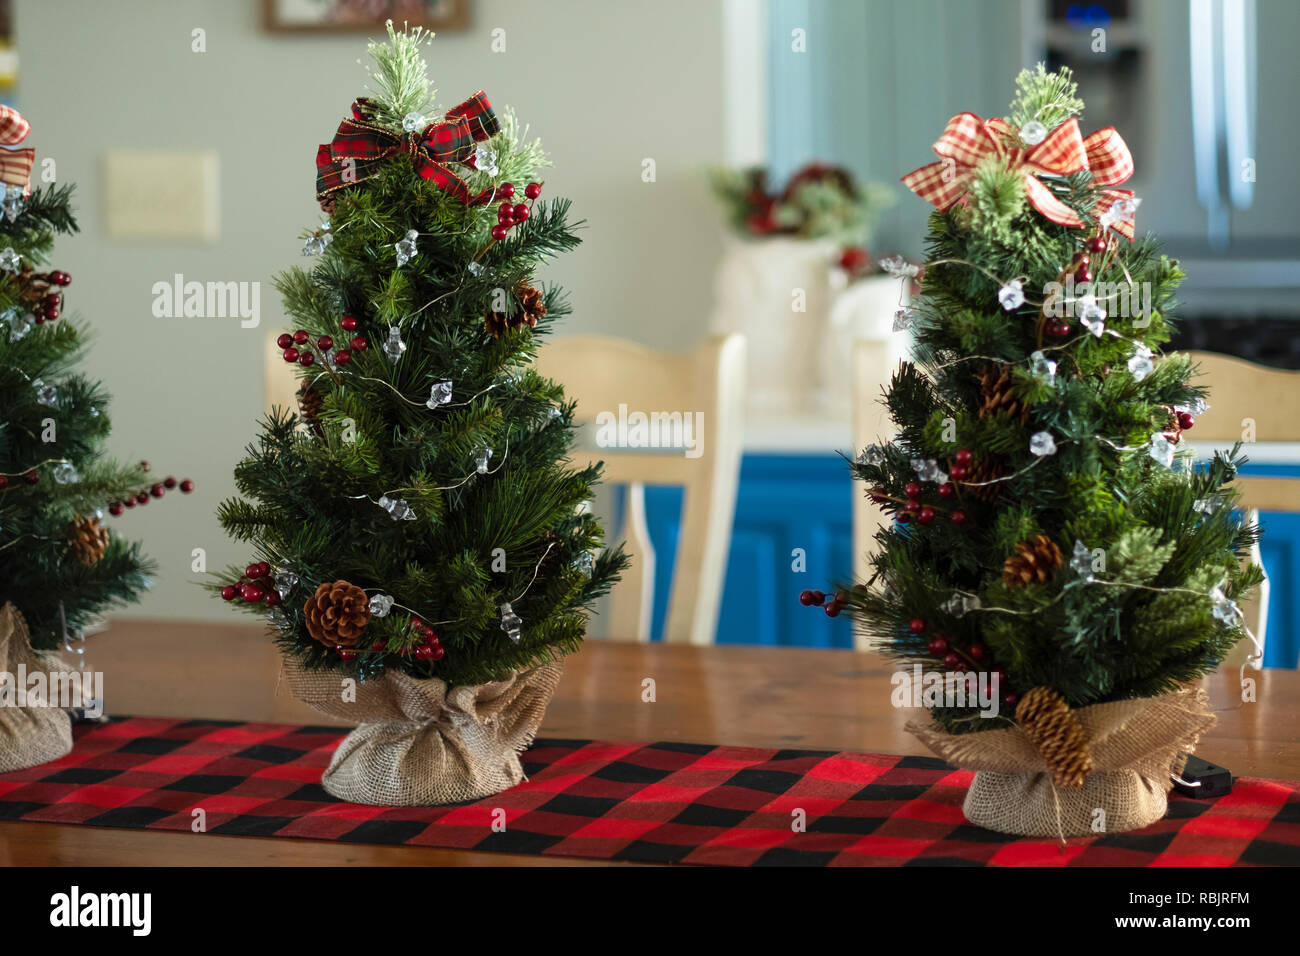 Indoor Christmas Decor High Resolution Stock Photography And Images Alamy